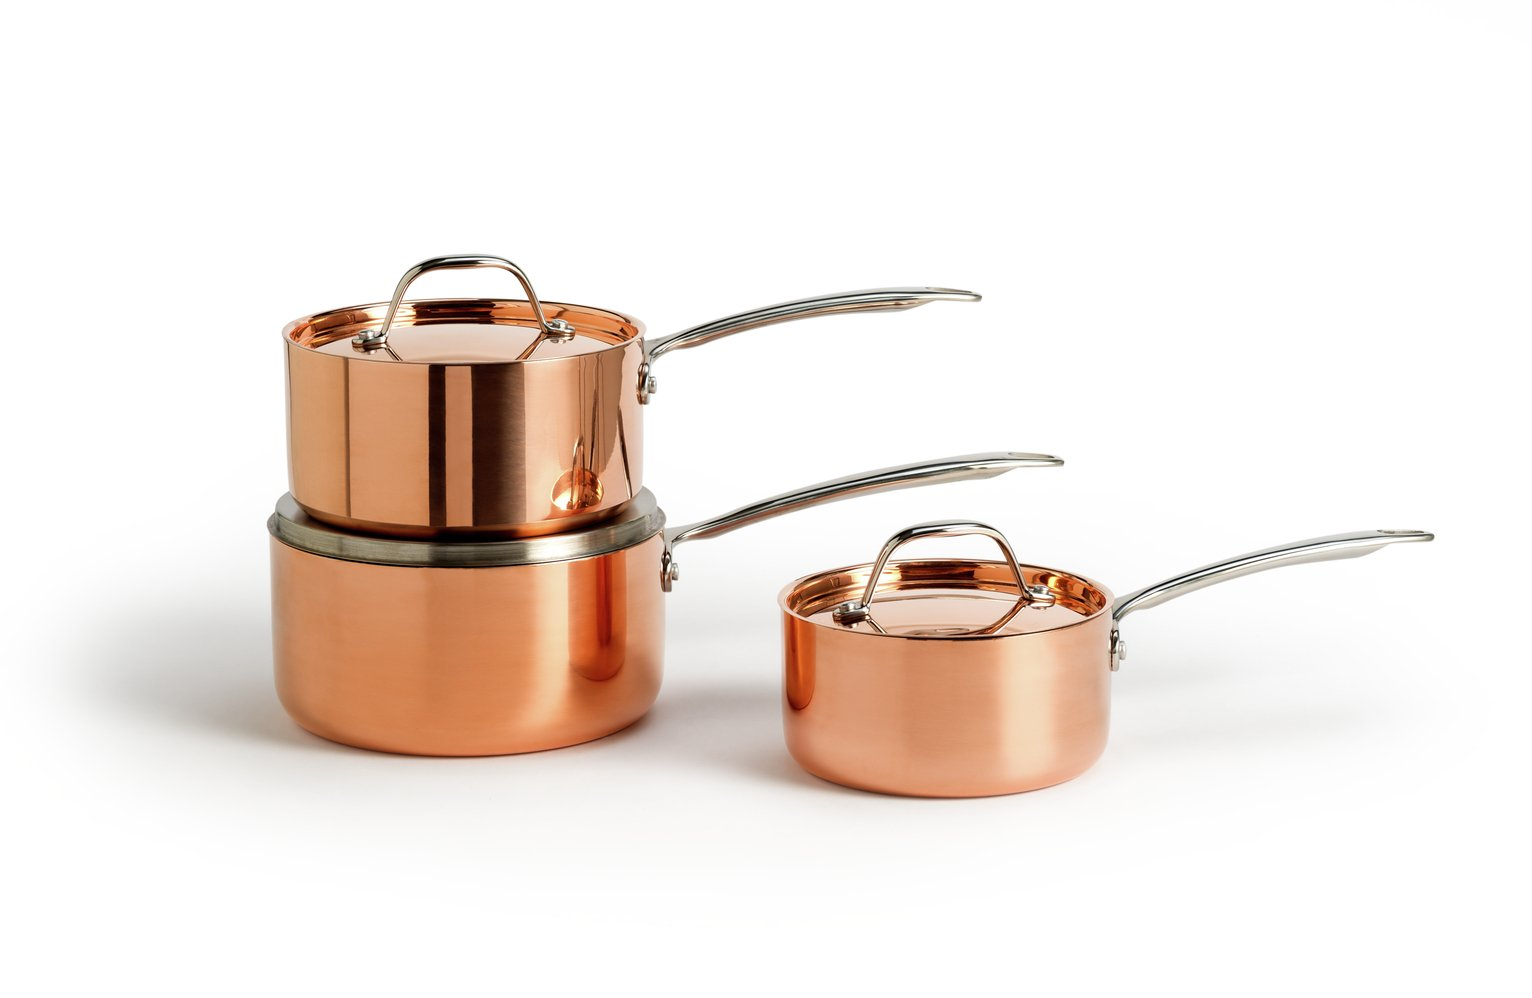 Argos Home 3 Piece Copper Triply Pan Set